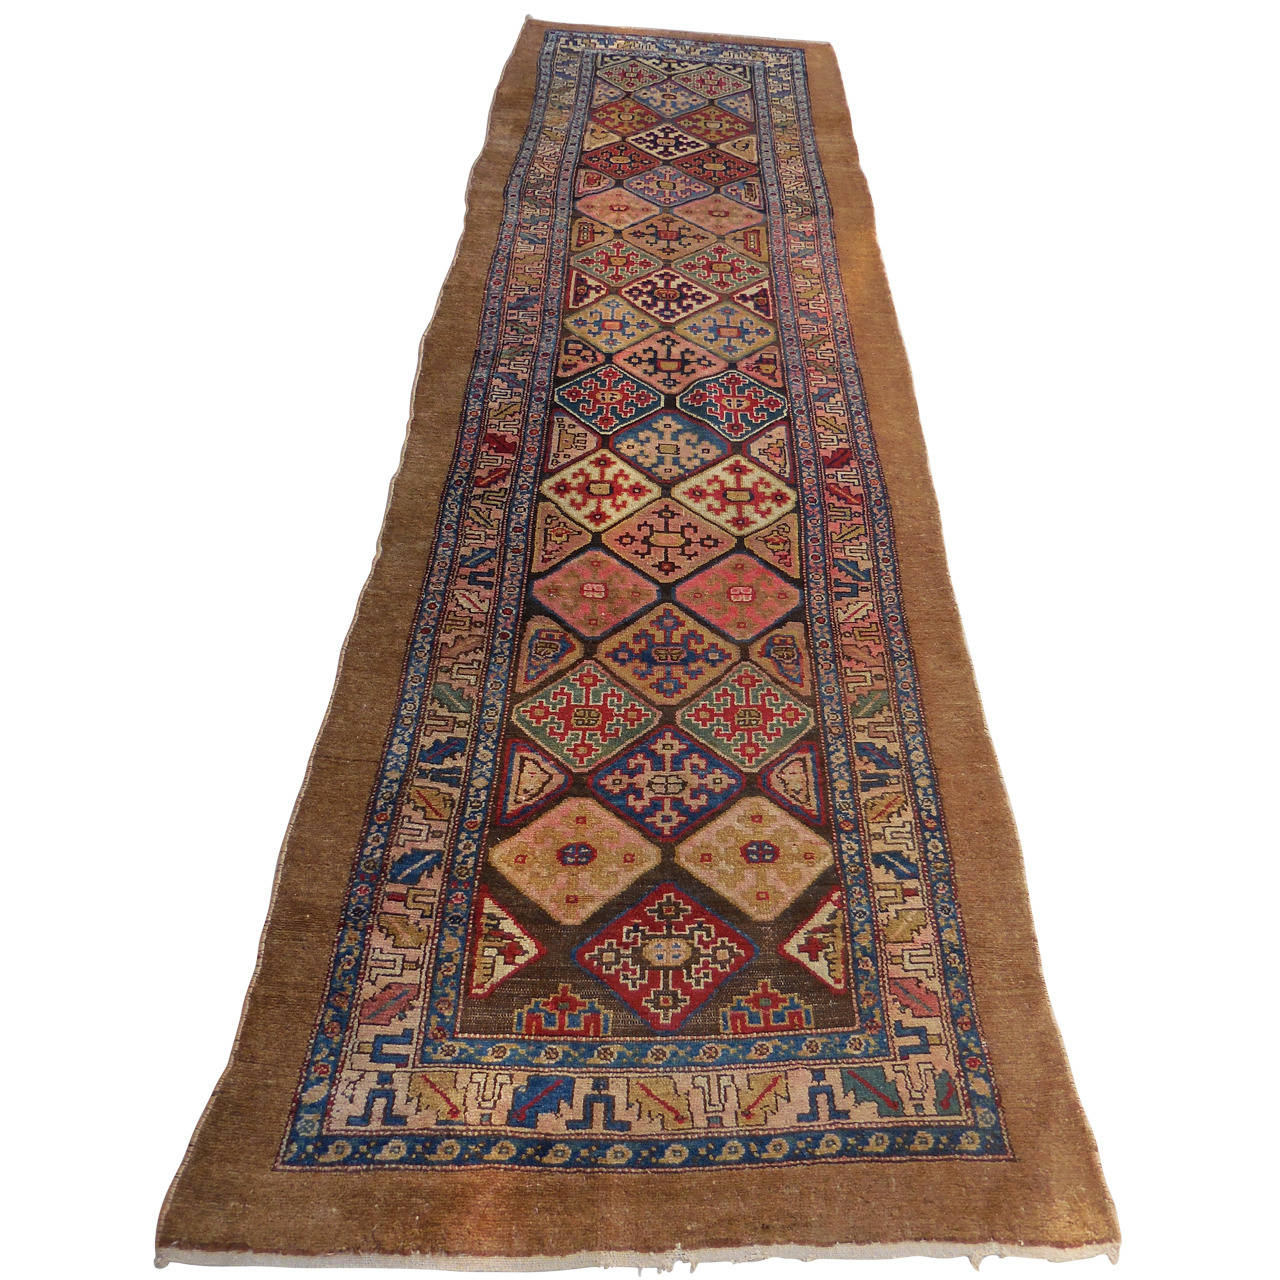 Camel Wool Serb Runner With Stylized Borders Rug At 1stdibs